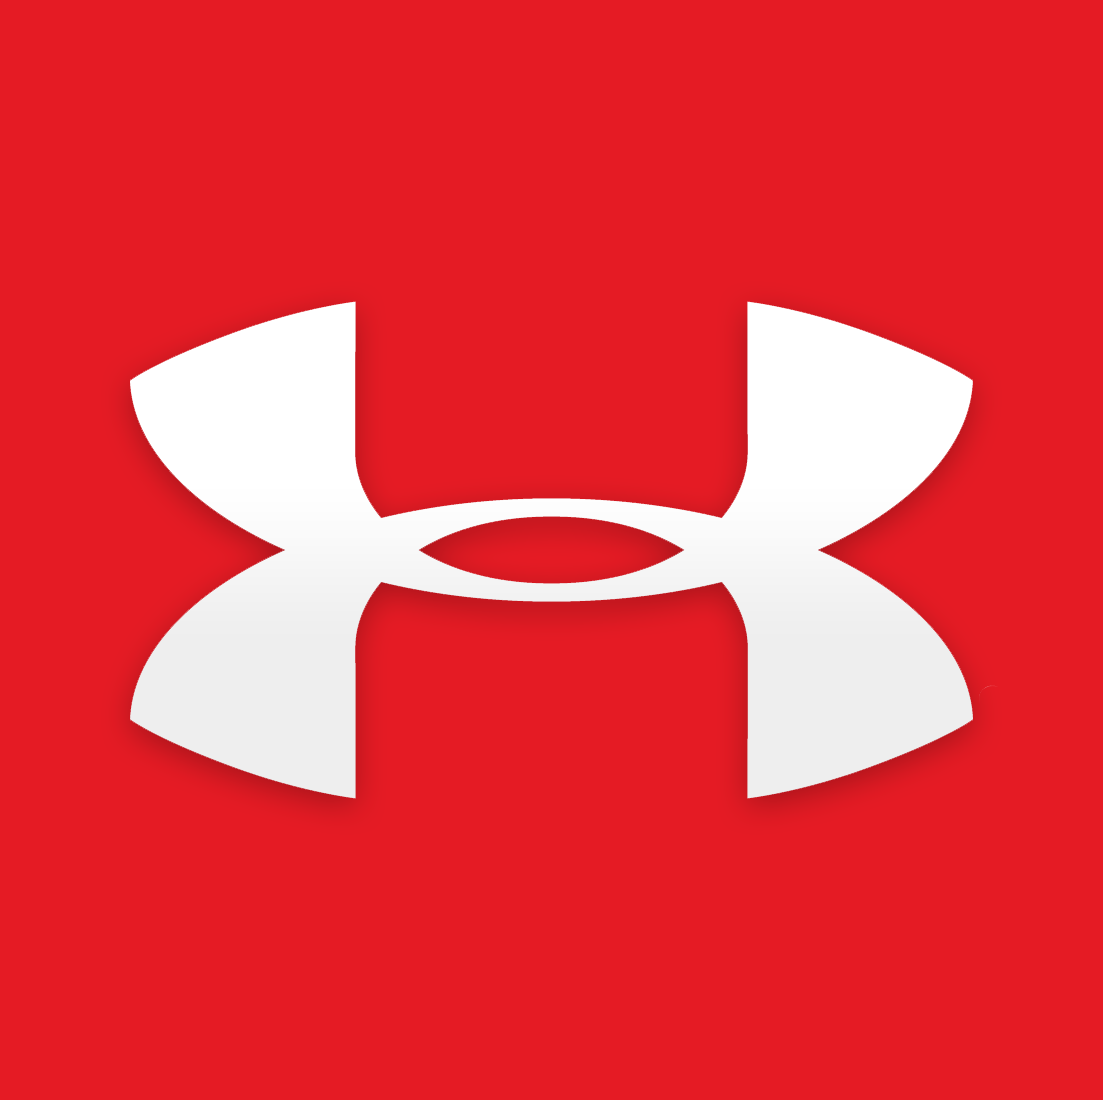 9cab3fdd9 Under Armour: Protect This House - Under Armour, Inc. (NYSE:UA ...